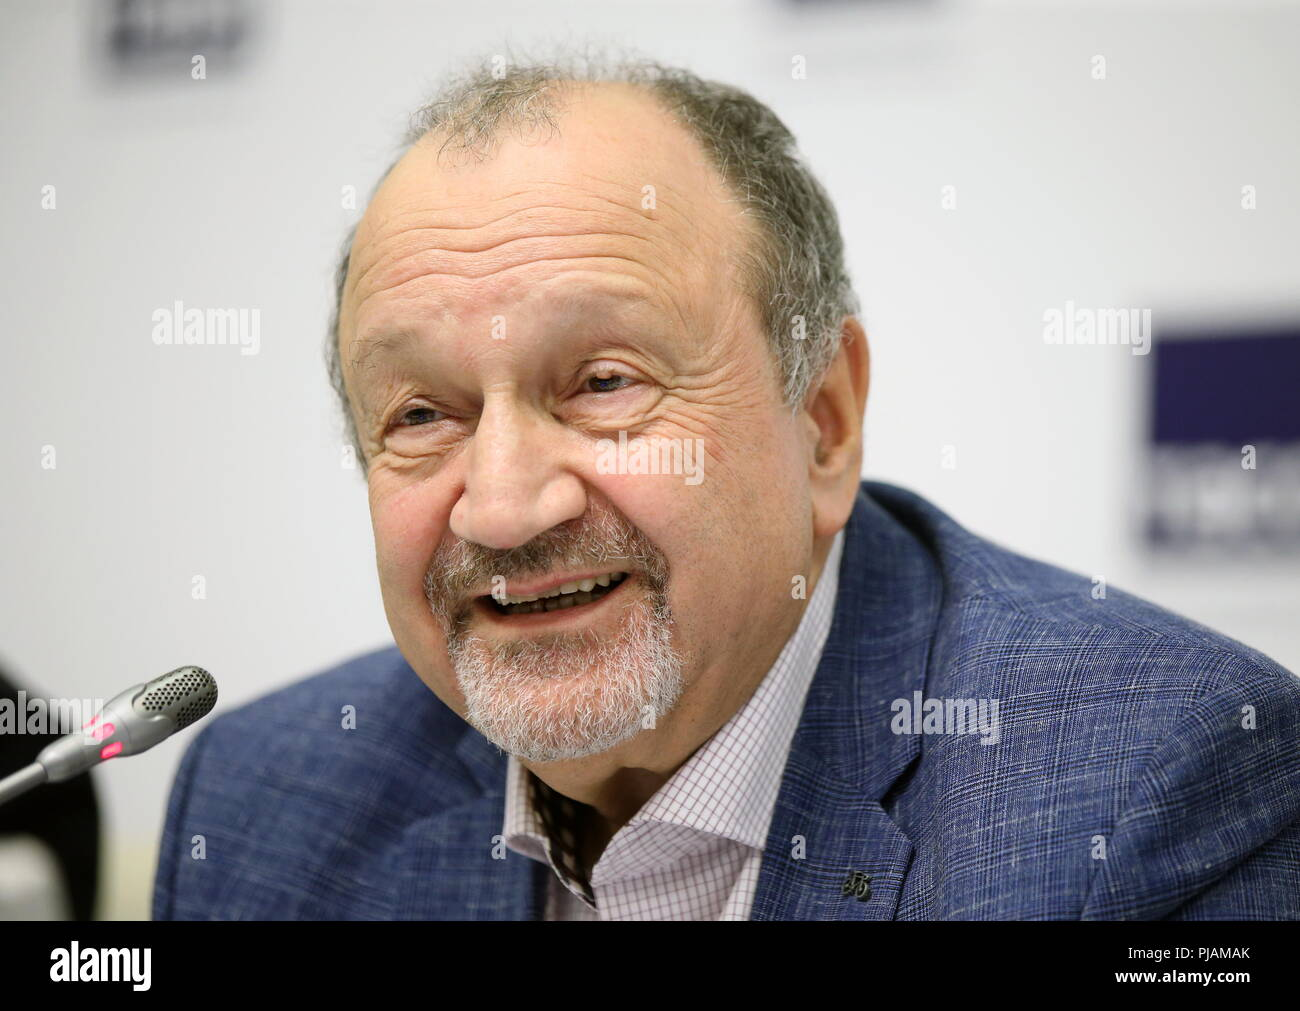 St Petersburg, Russia. 06th Sep, 2018. ST PETERSBURG, RUSSIA - SEPTEMBER 6, 2018: Baltic House Festival Theatre General Director Sergei Shub during a press conference on the Europe Theatre Prize. Peter Kovalev/TASS Credit: ITAR-TASS News Agency/Alamy Live News Stock Photo